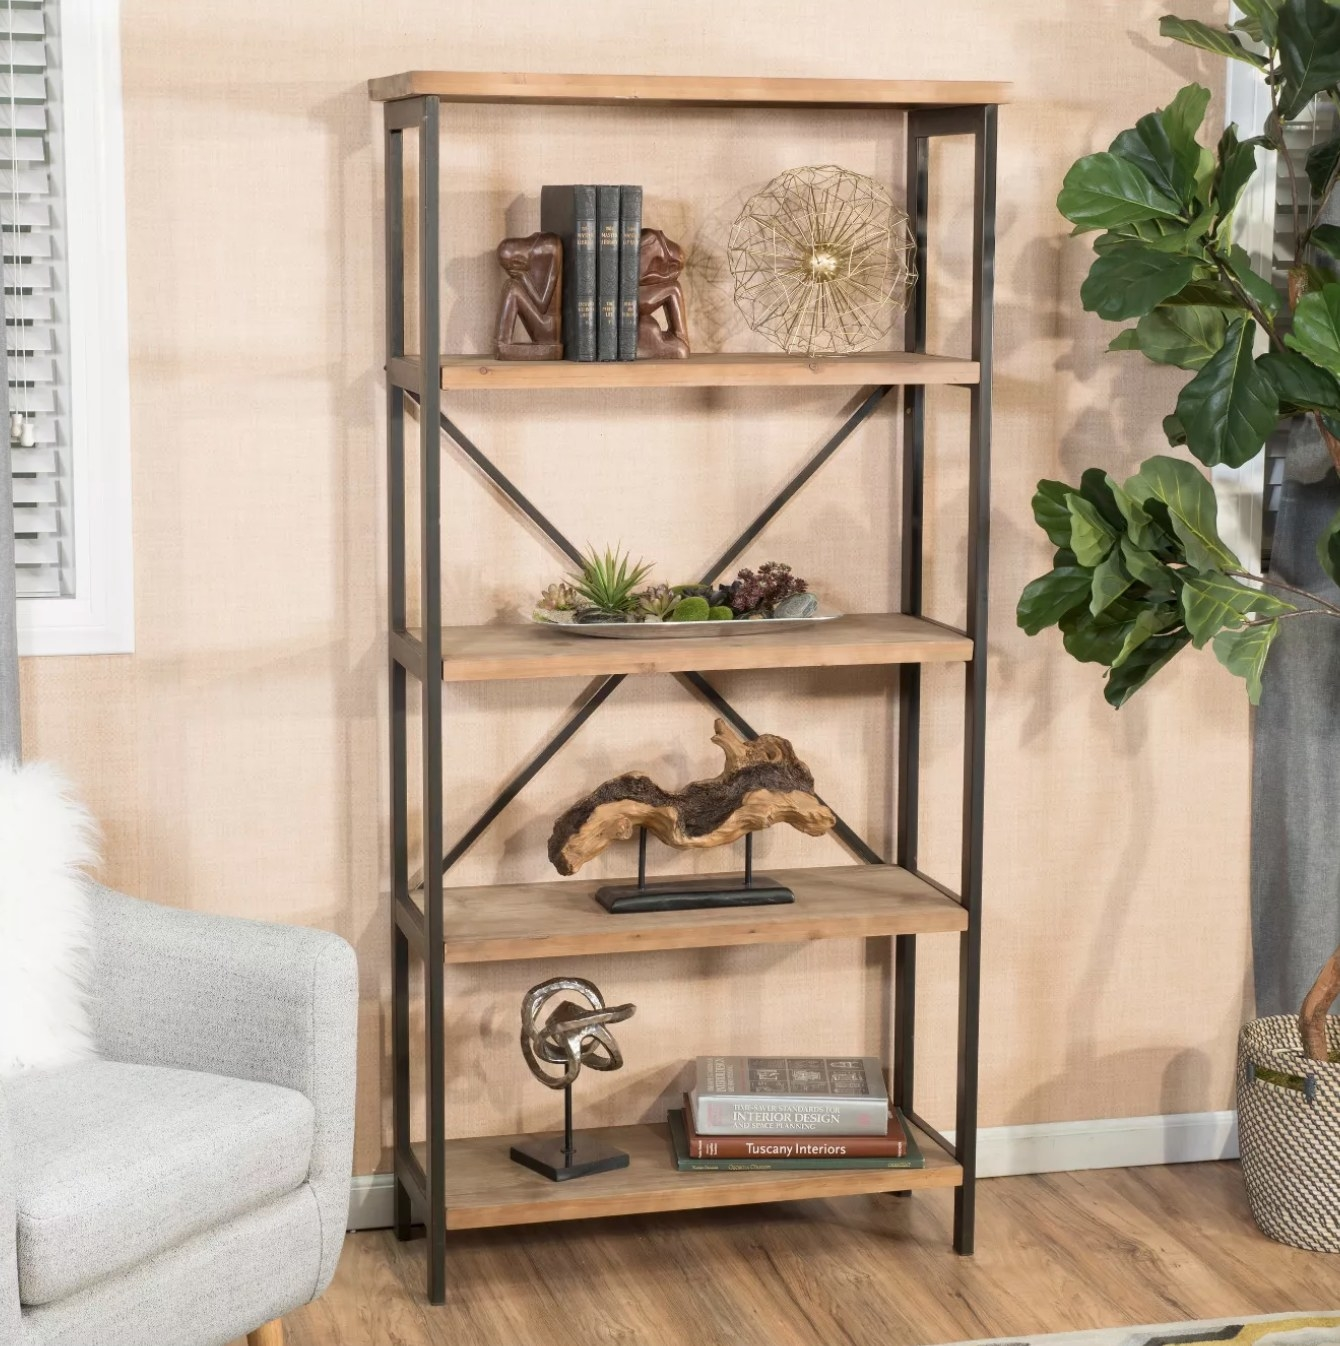 The industrial bookcase made of wood and metal